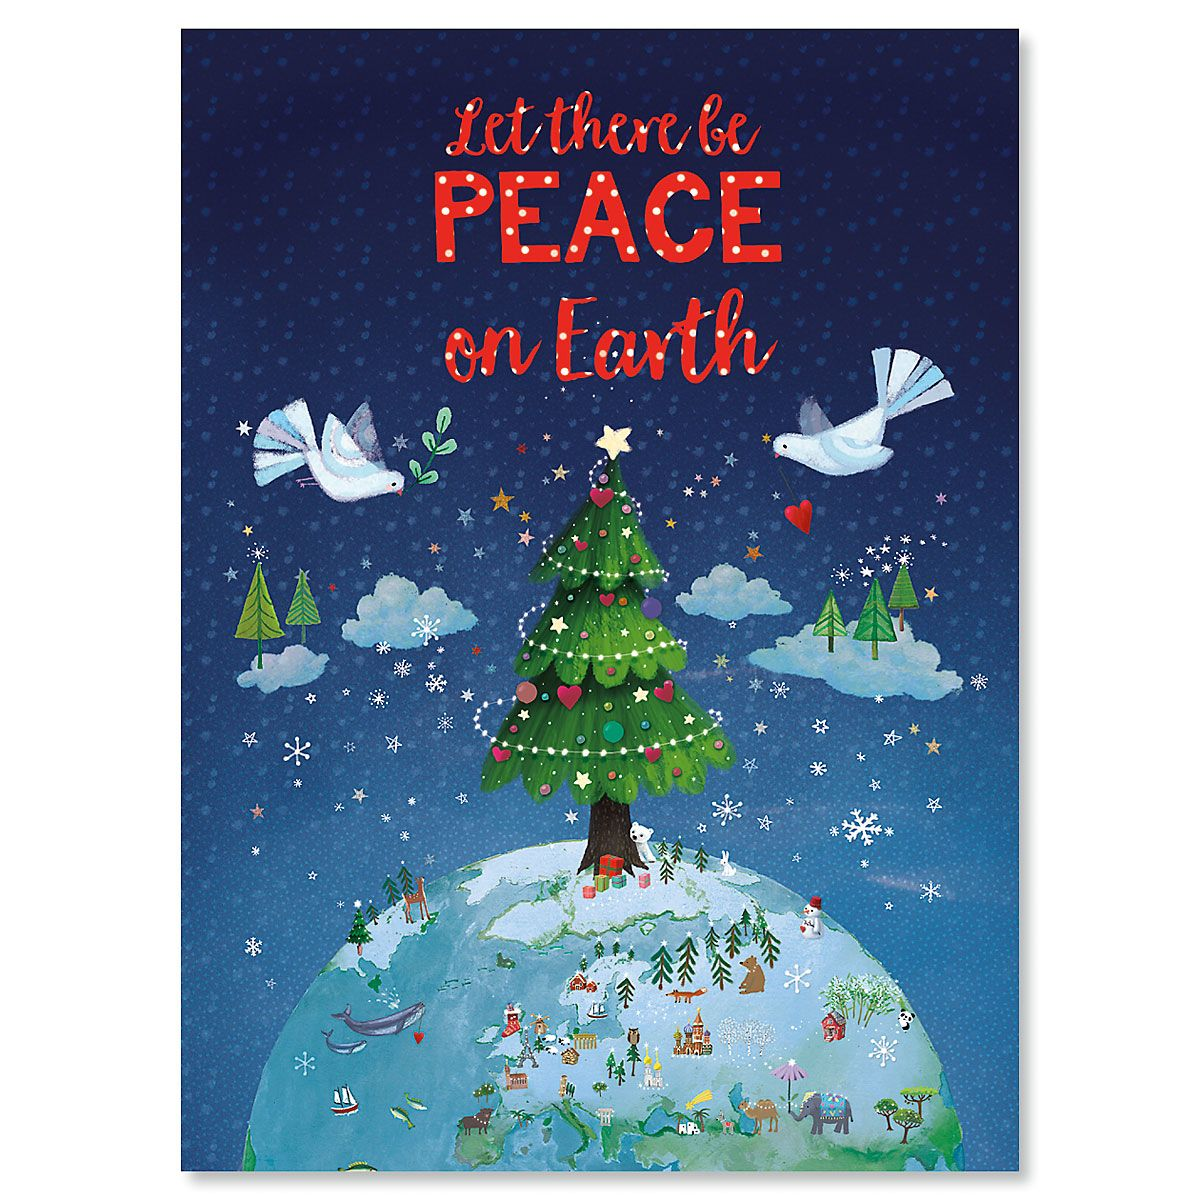 Let There Be Peace Nonpersonalized Christmas Cards - Set of 72